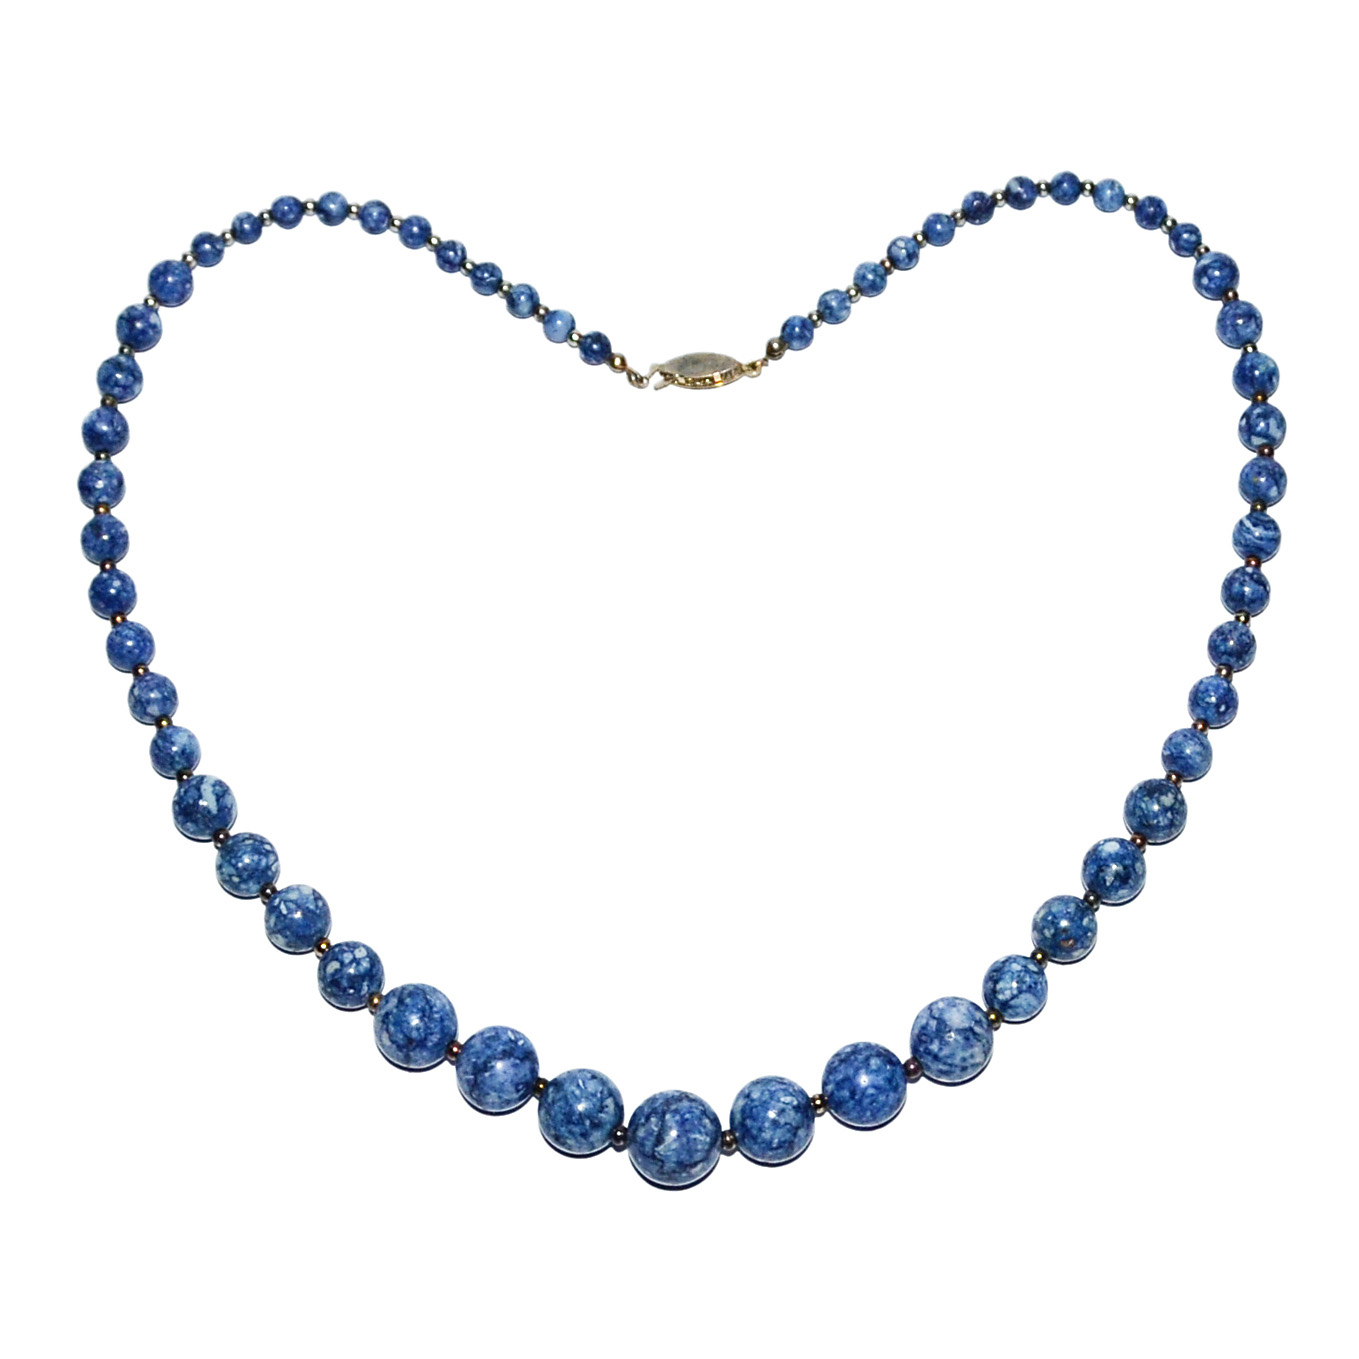 Lot 29 - 青金石珠項錬 A Lapis Lazuli Bead Necklace Composed of a single strand graduated beads with silver links